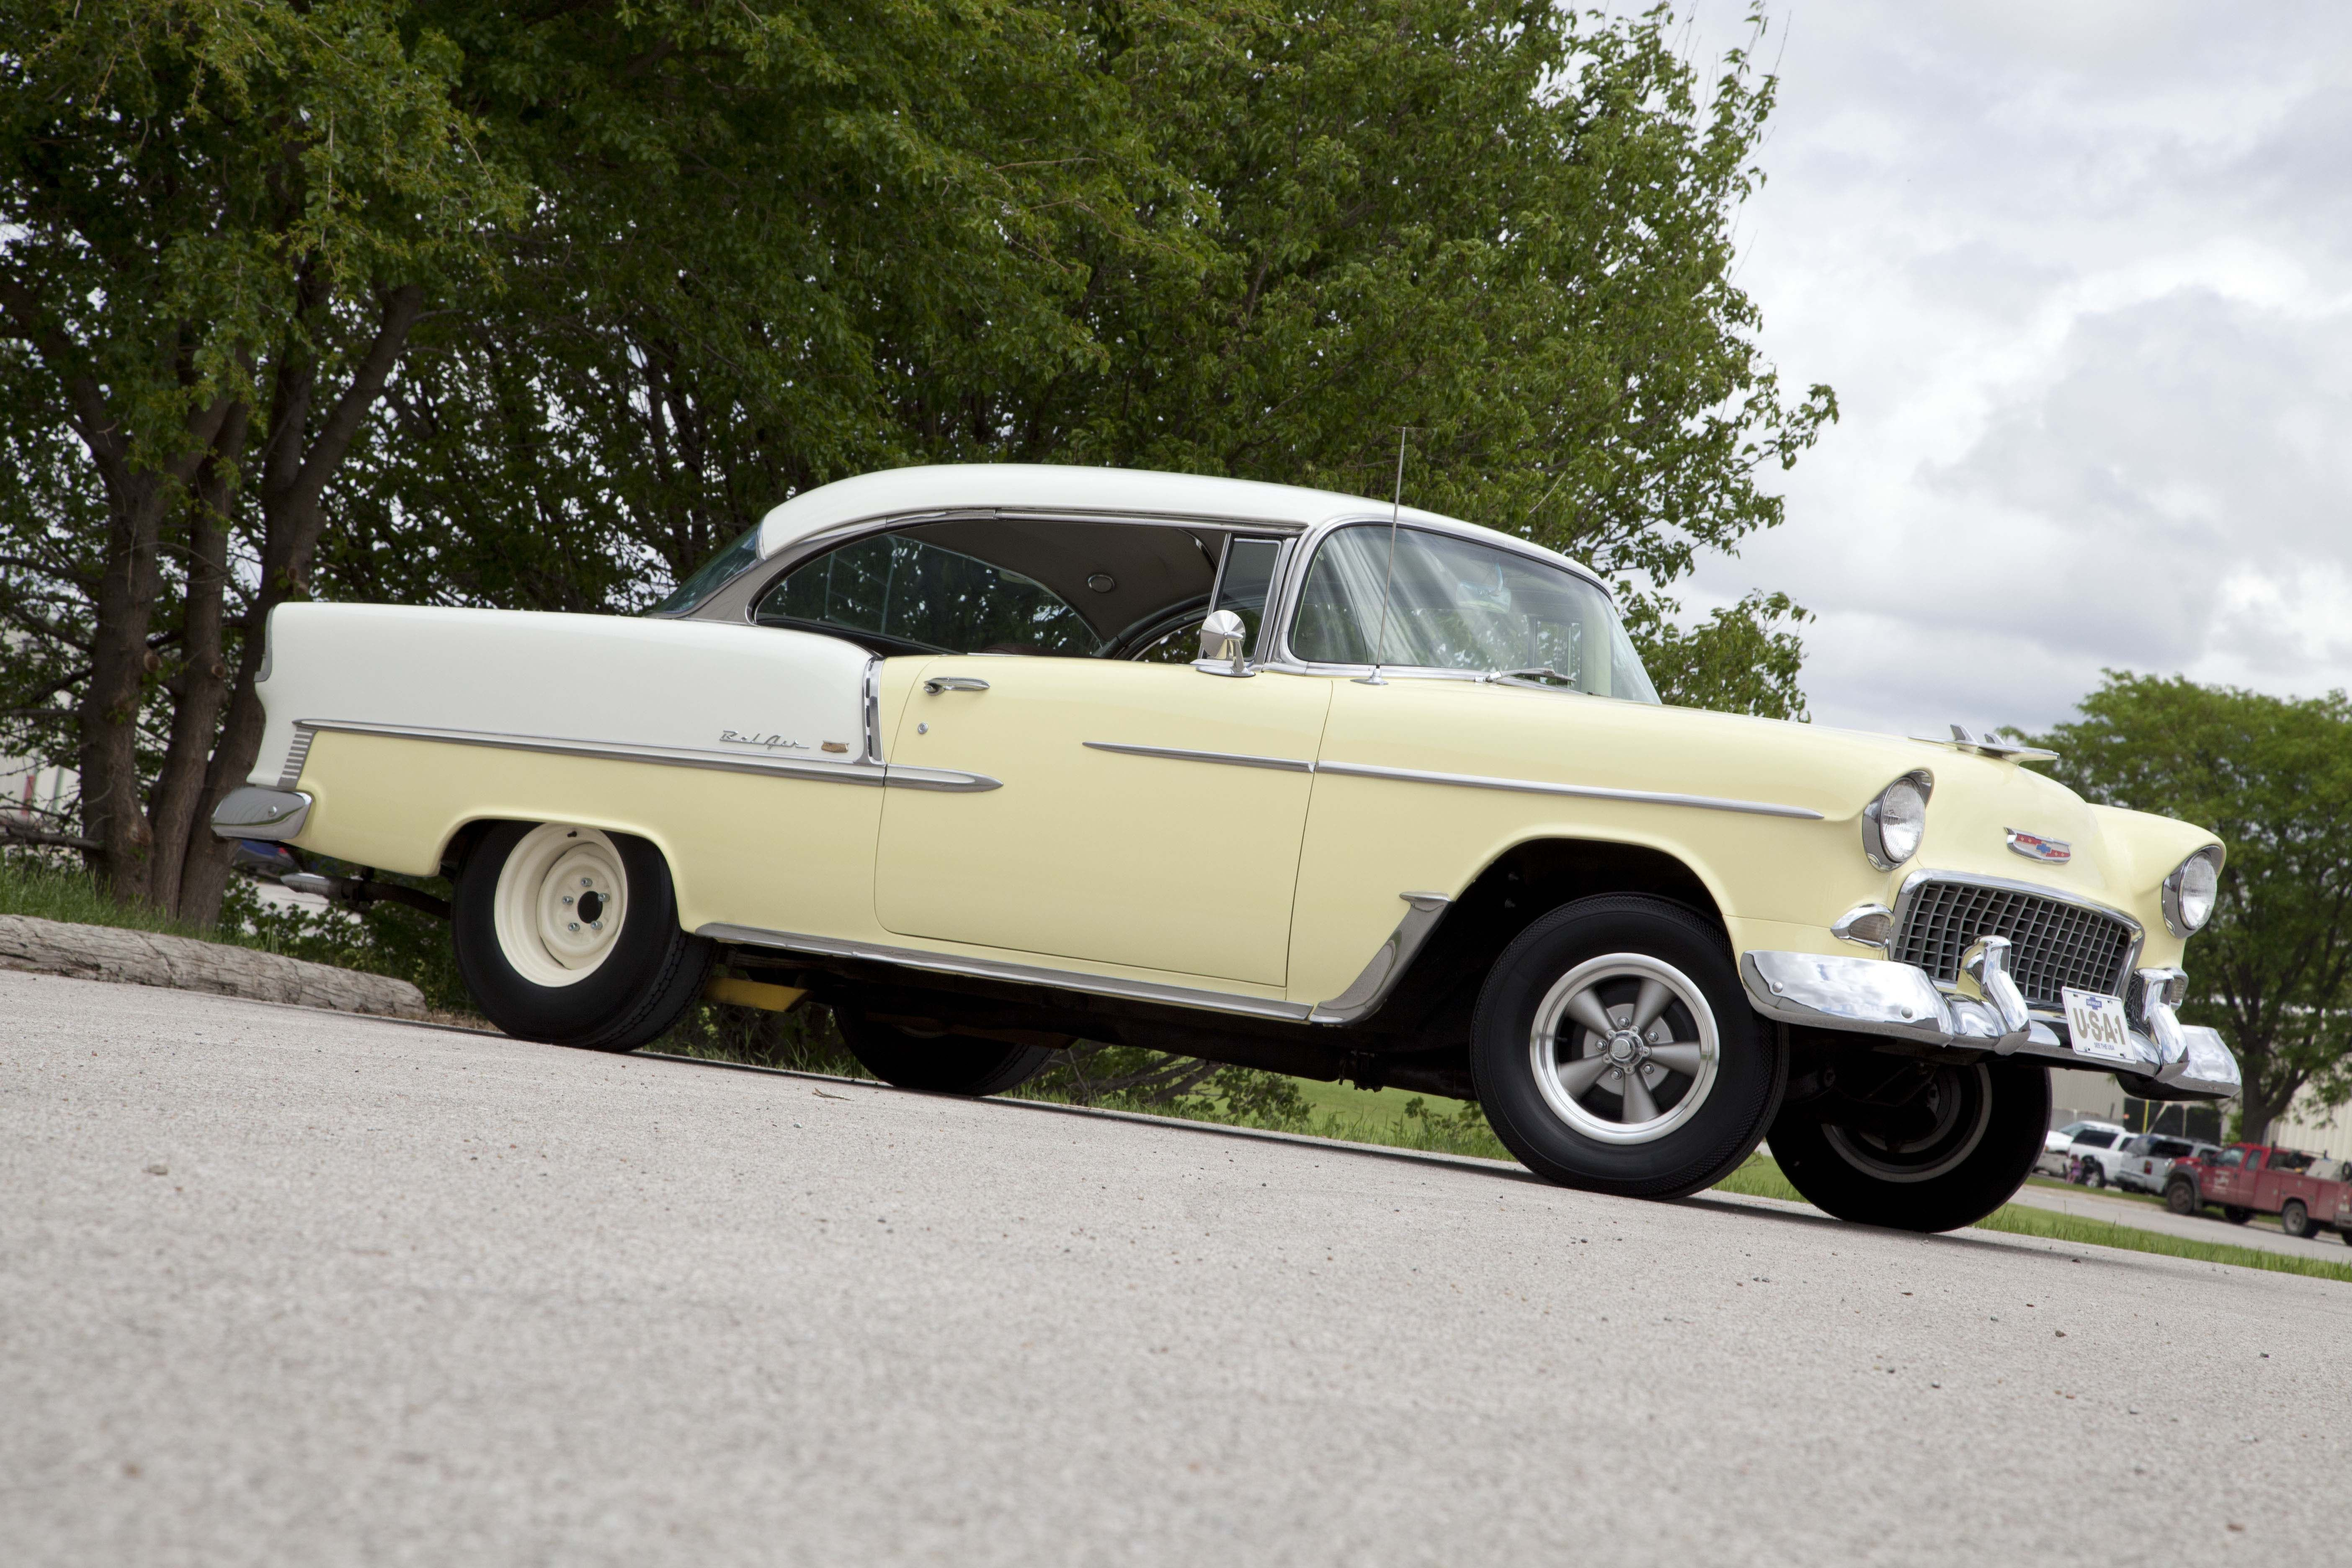 Vintage et mags vintage five is a classic drag front wheel for this 1955 chevy now in aluminum for durability